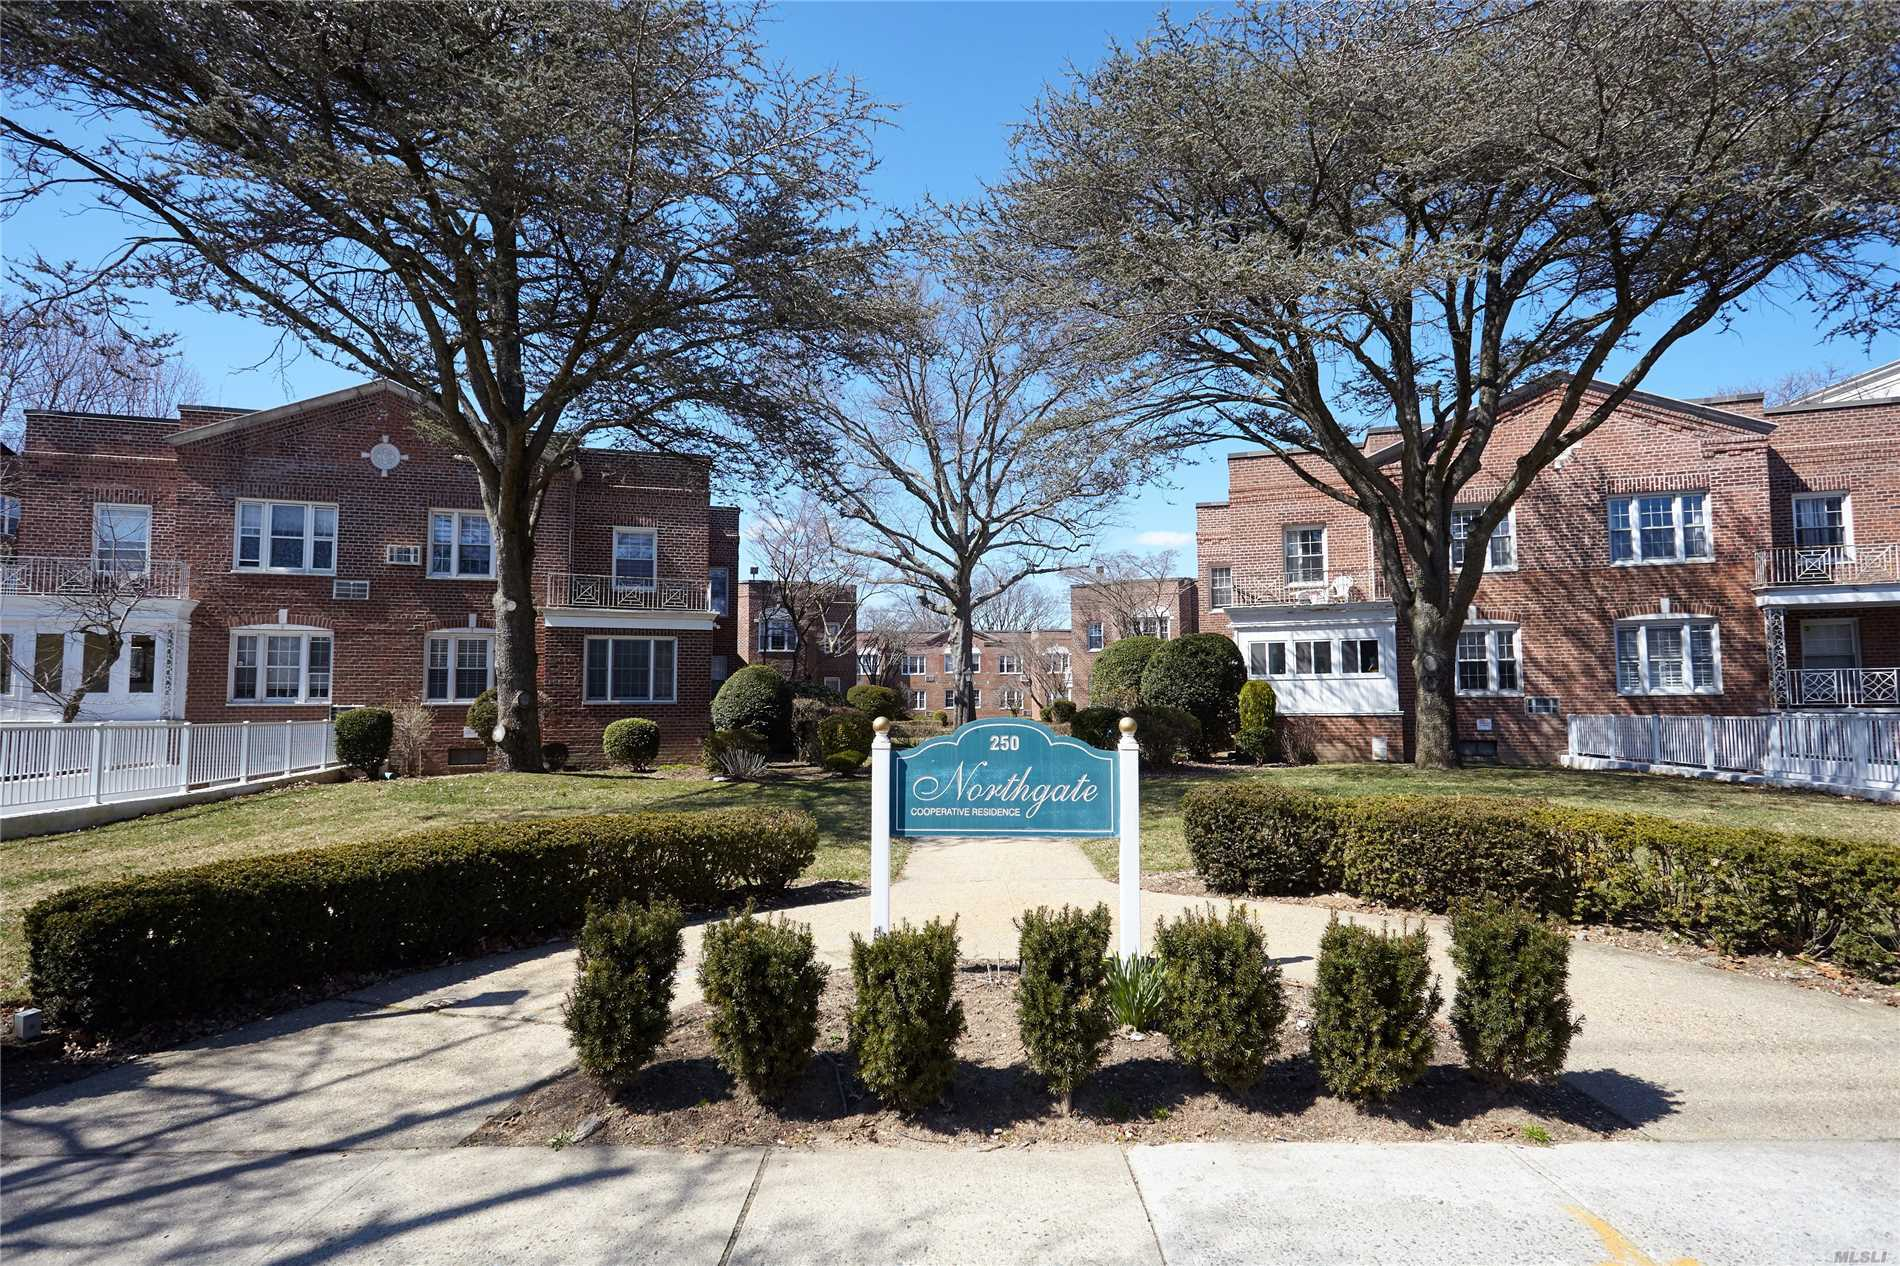 Bright And Sunny Updated 1st FLOOR Apartment. In The Heart Of Lawrence. TRUE 2 BEDROOM. Quiet Location. Newer Kitchen And Bath. Bath Has Separate Stall Shower And Bathtub. Hardwood Floors Throughout. Affordable and Close To All.